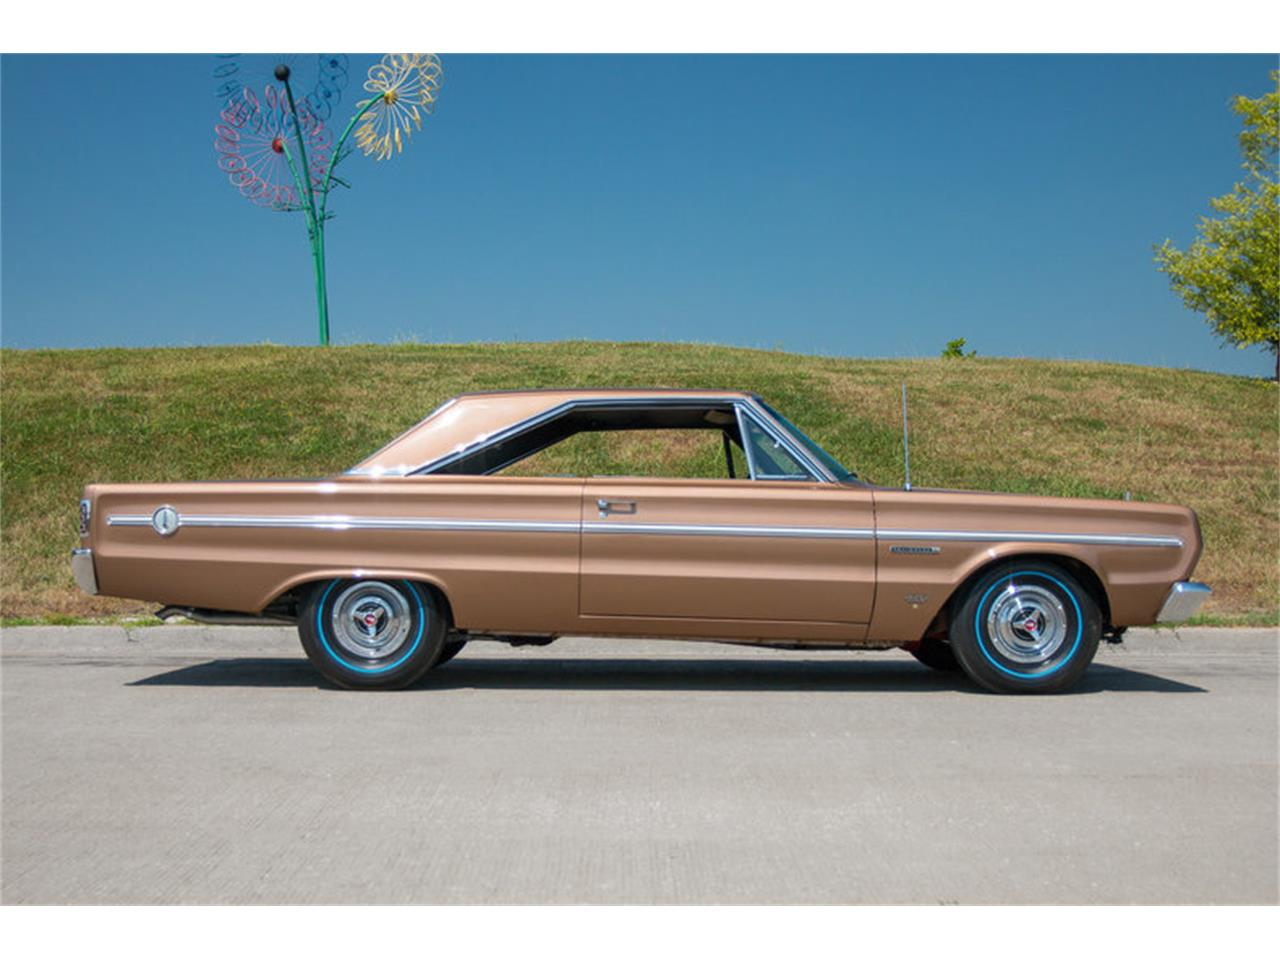 Large Picture of Classic 1966 Plymouth Belvedere located in St. Charles Missouri - $99,995.00 Offered by Fast Lane Classic Cars Inc. - LH4H